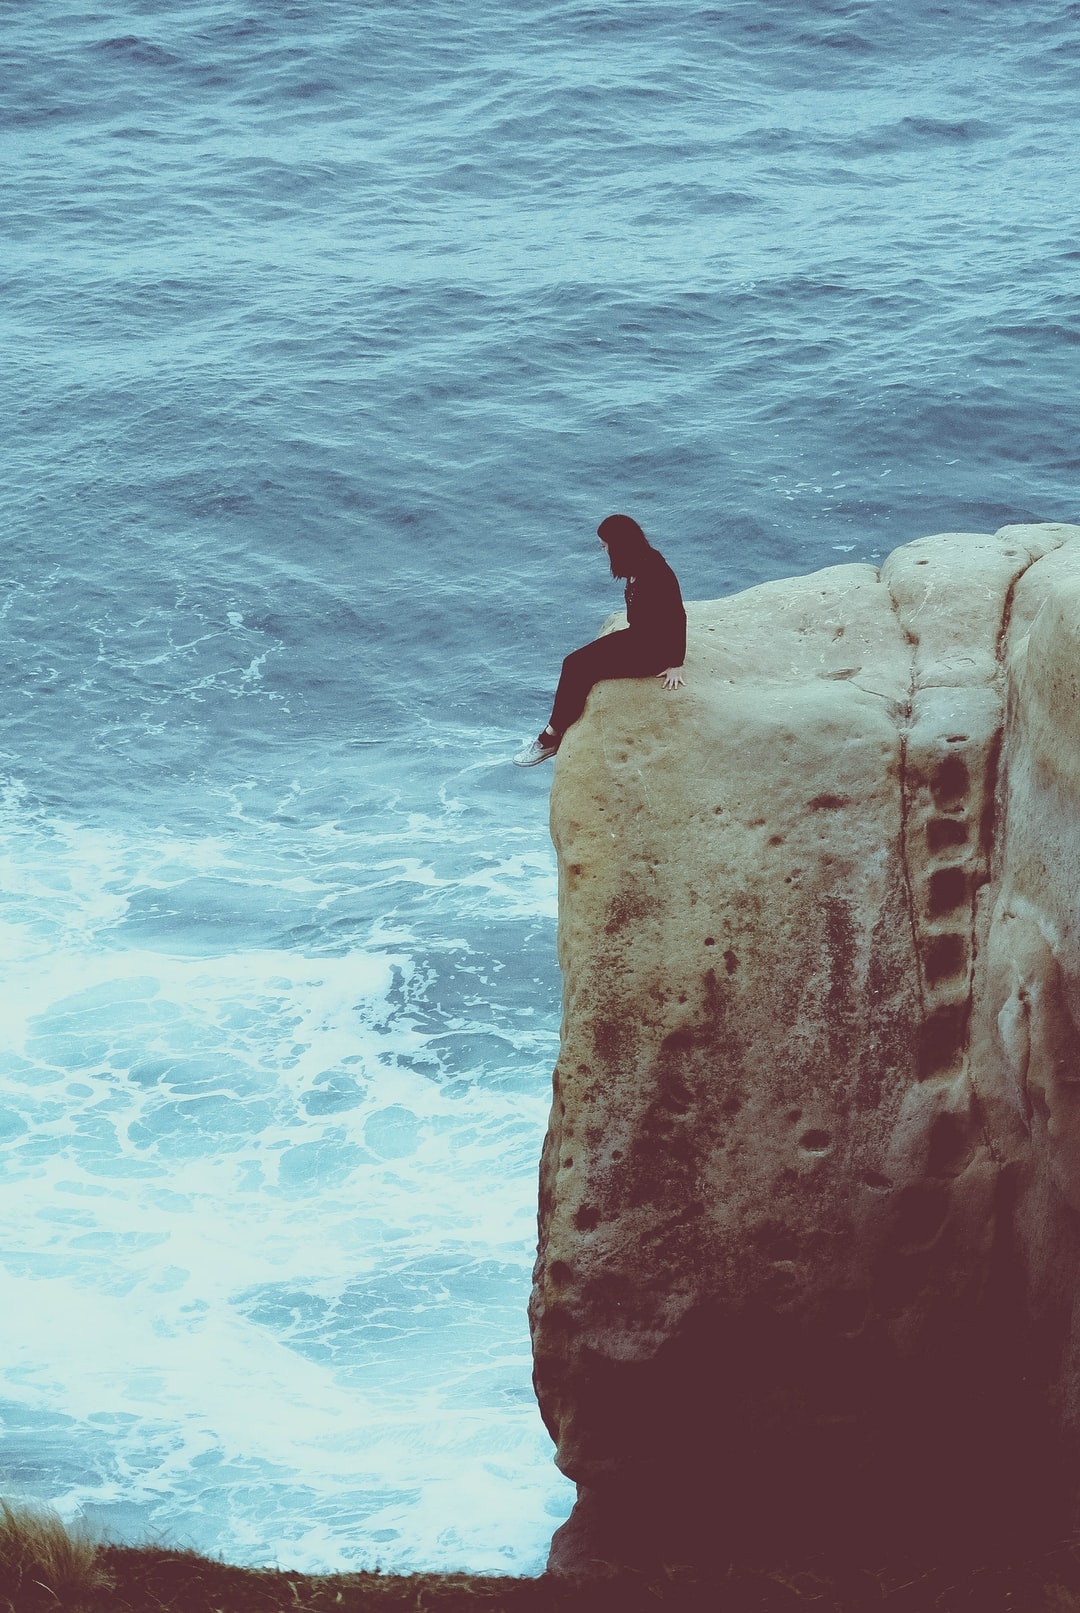 This is risky business, the waves come high and the fall is long, the wind is rough and rock is below.